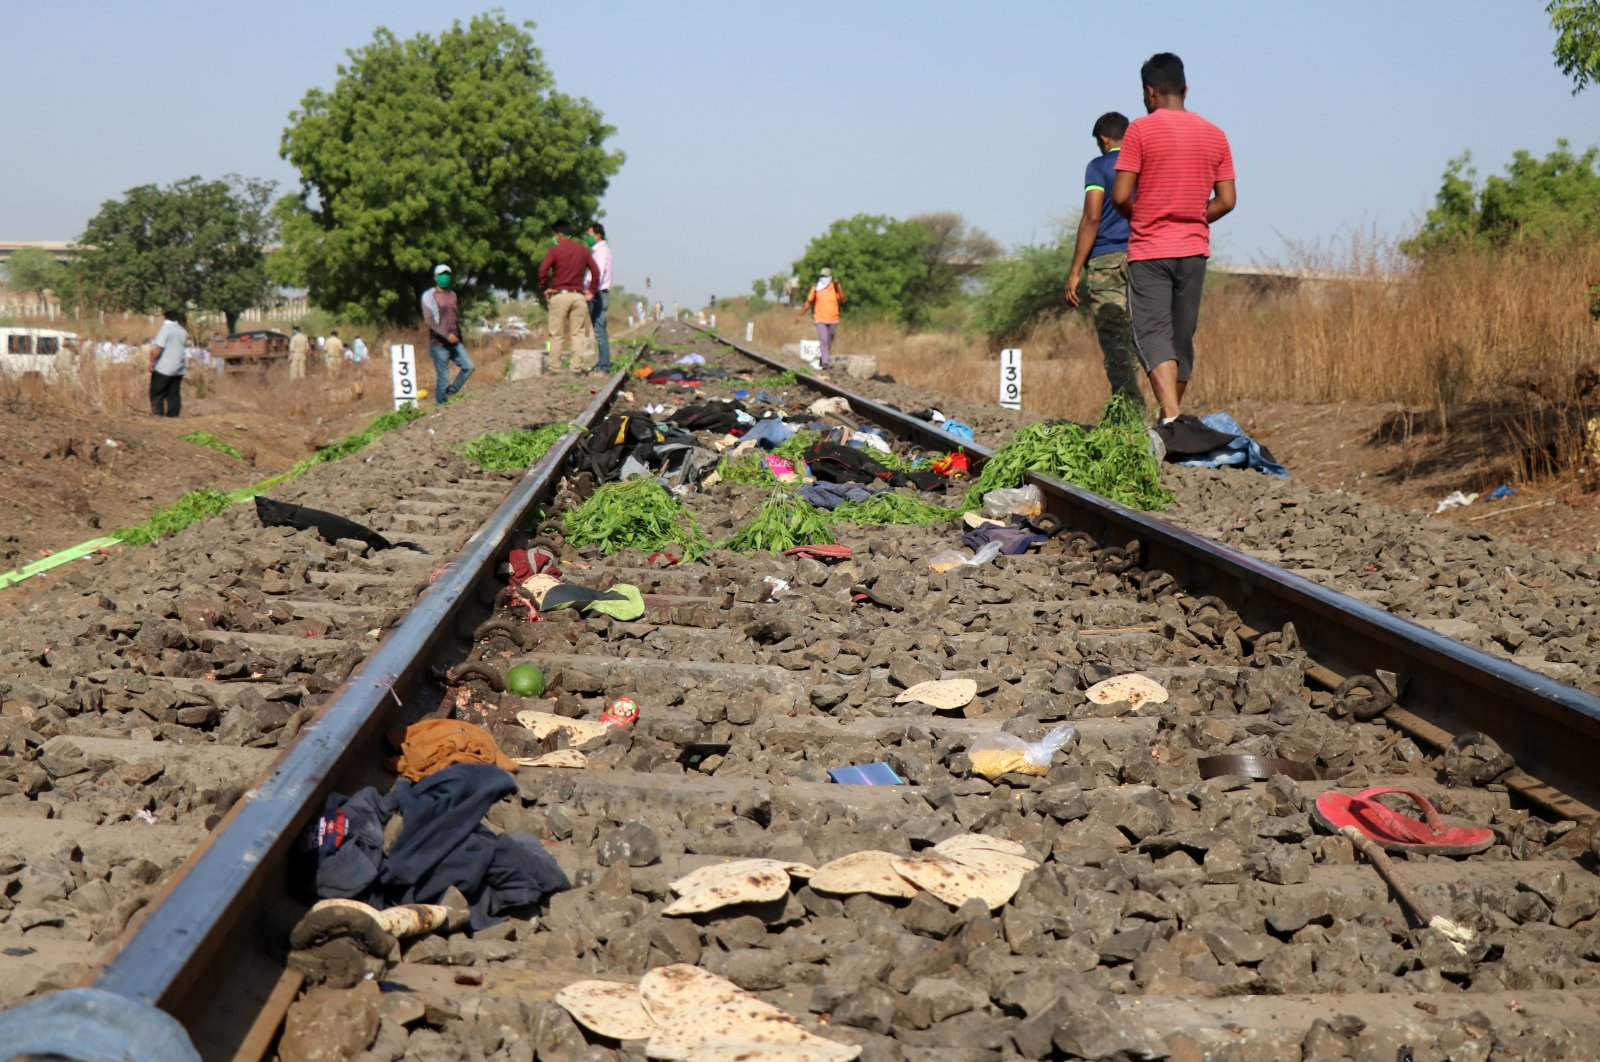 The belongings of victims lie scattered after a train ran over migrant workers sleeping on the track in the Aurangabad district of the western state of Maharashtra, India, May 8, 2020. (Reuters Photo)